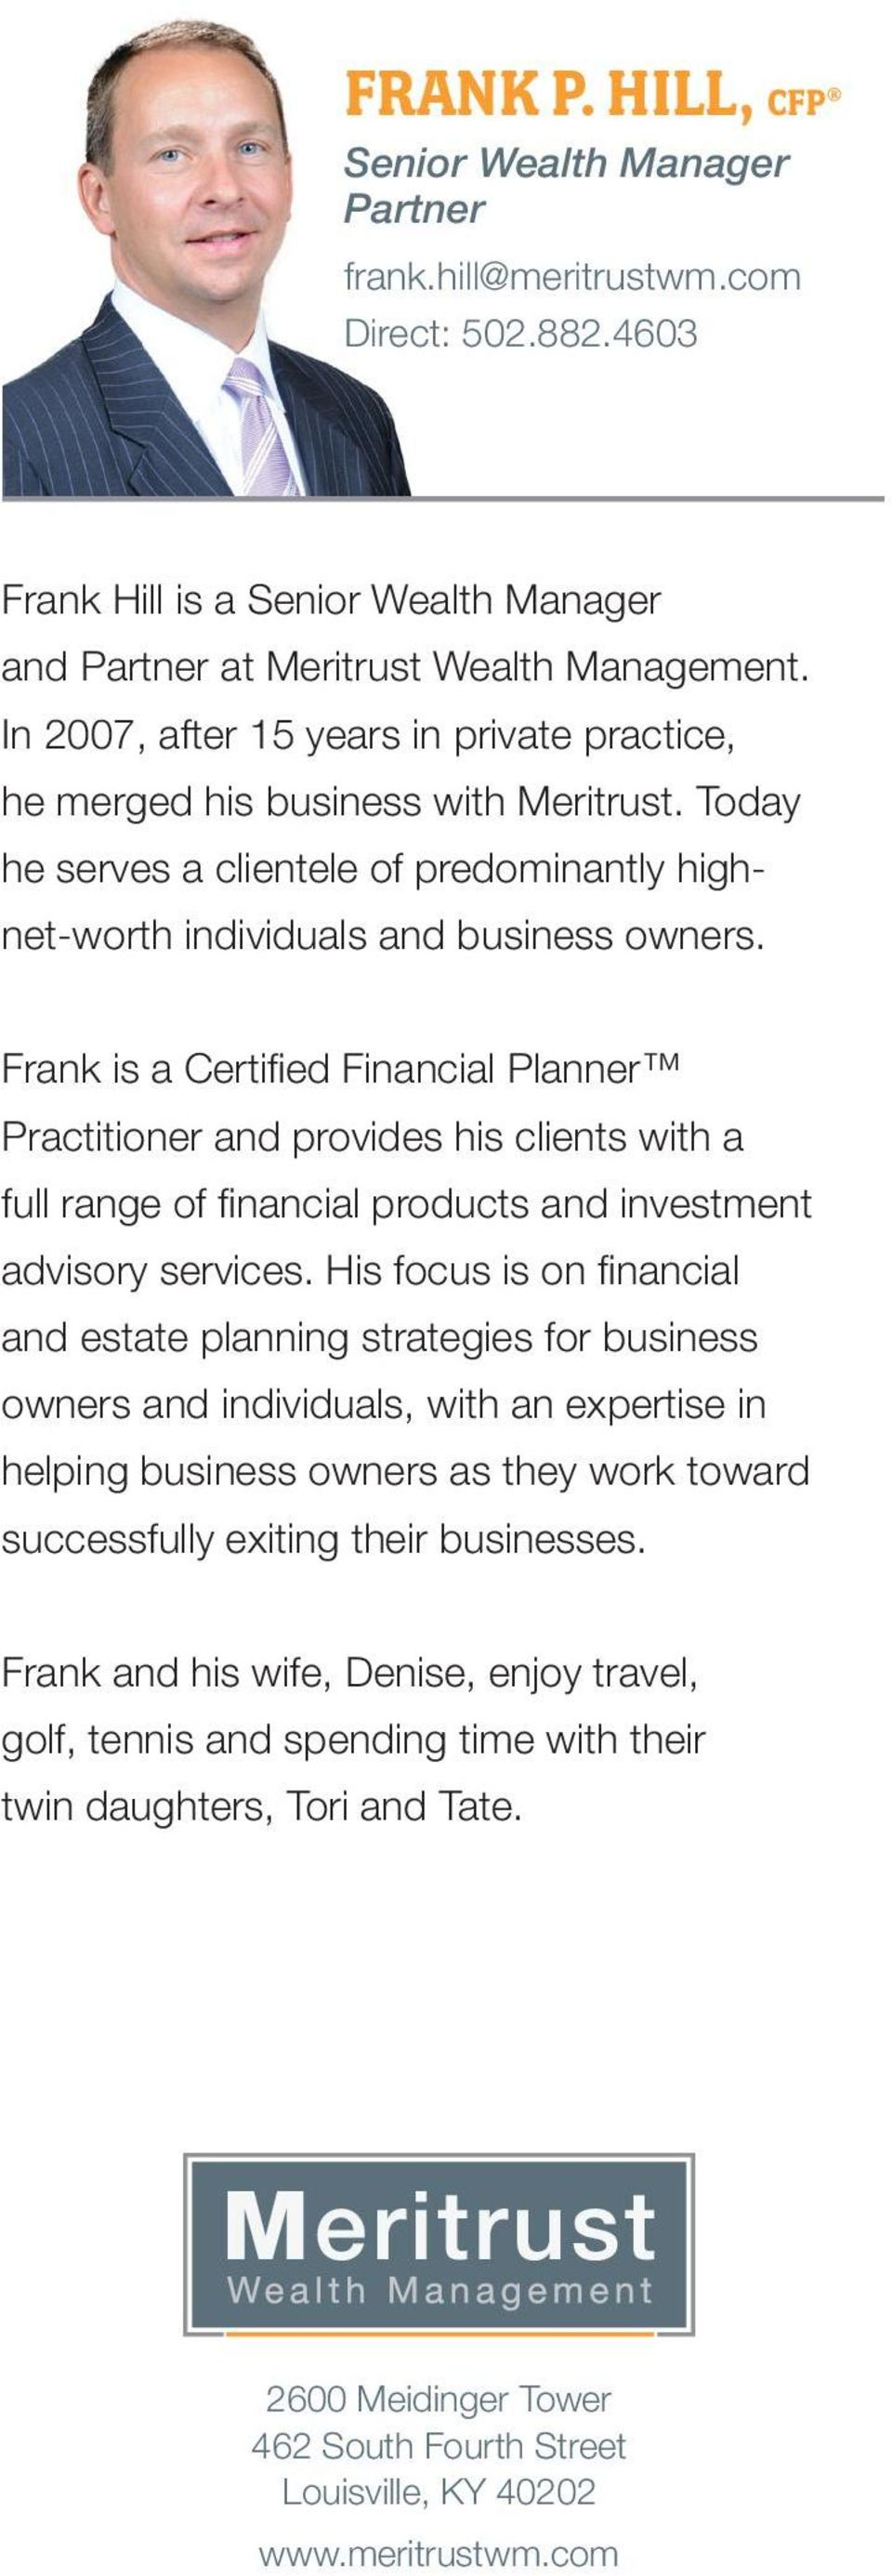 FOCUSED ON YOUR FINANCIAL SUCCESS. Frank is a Certified Financial Planner Practitioner and provides his clients with a full range of financial products and investment advisory services.